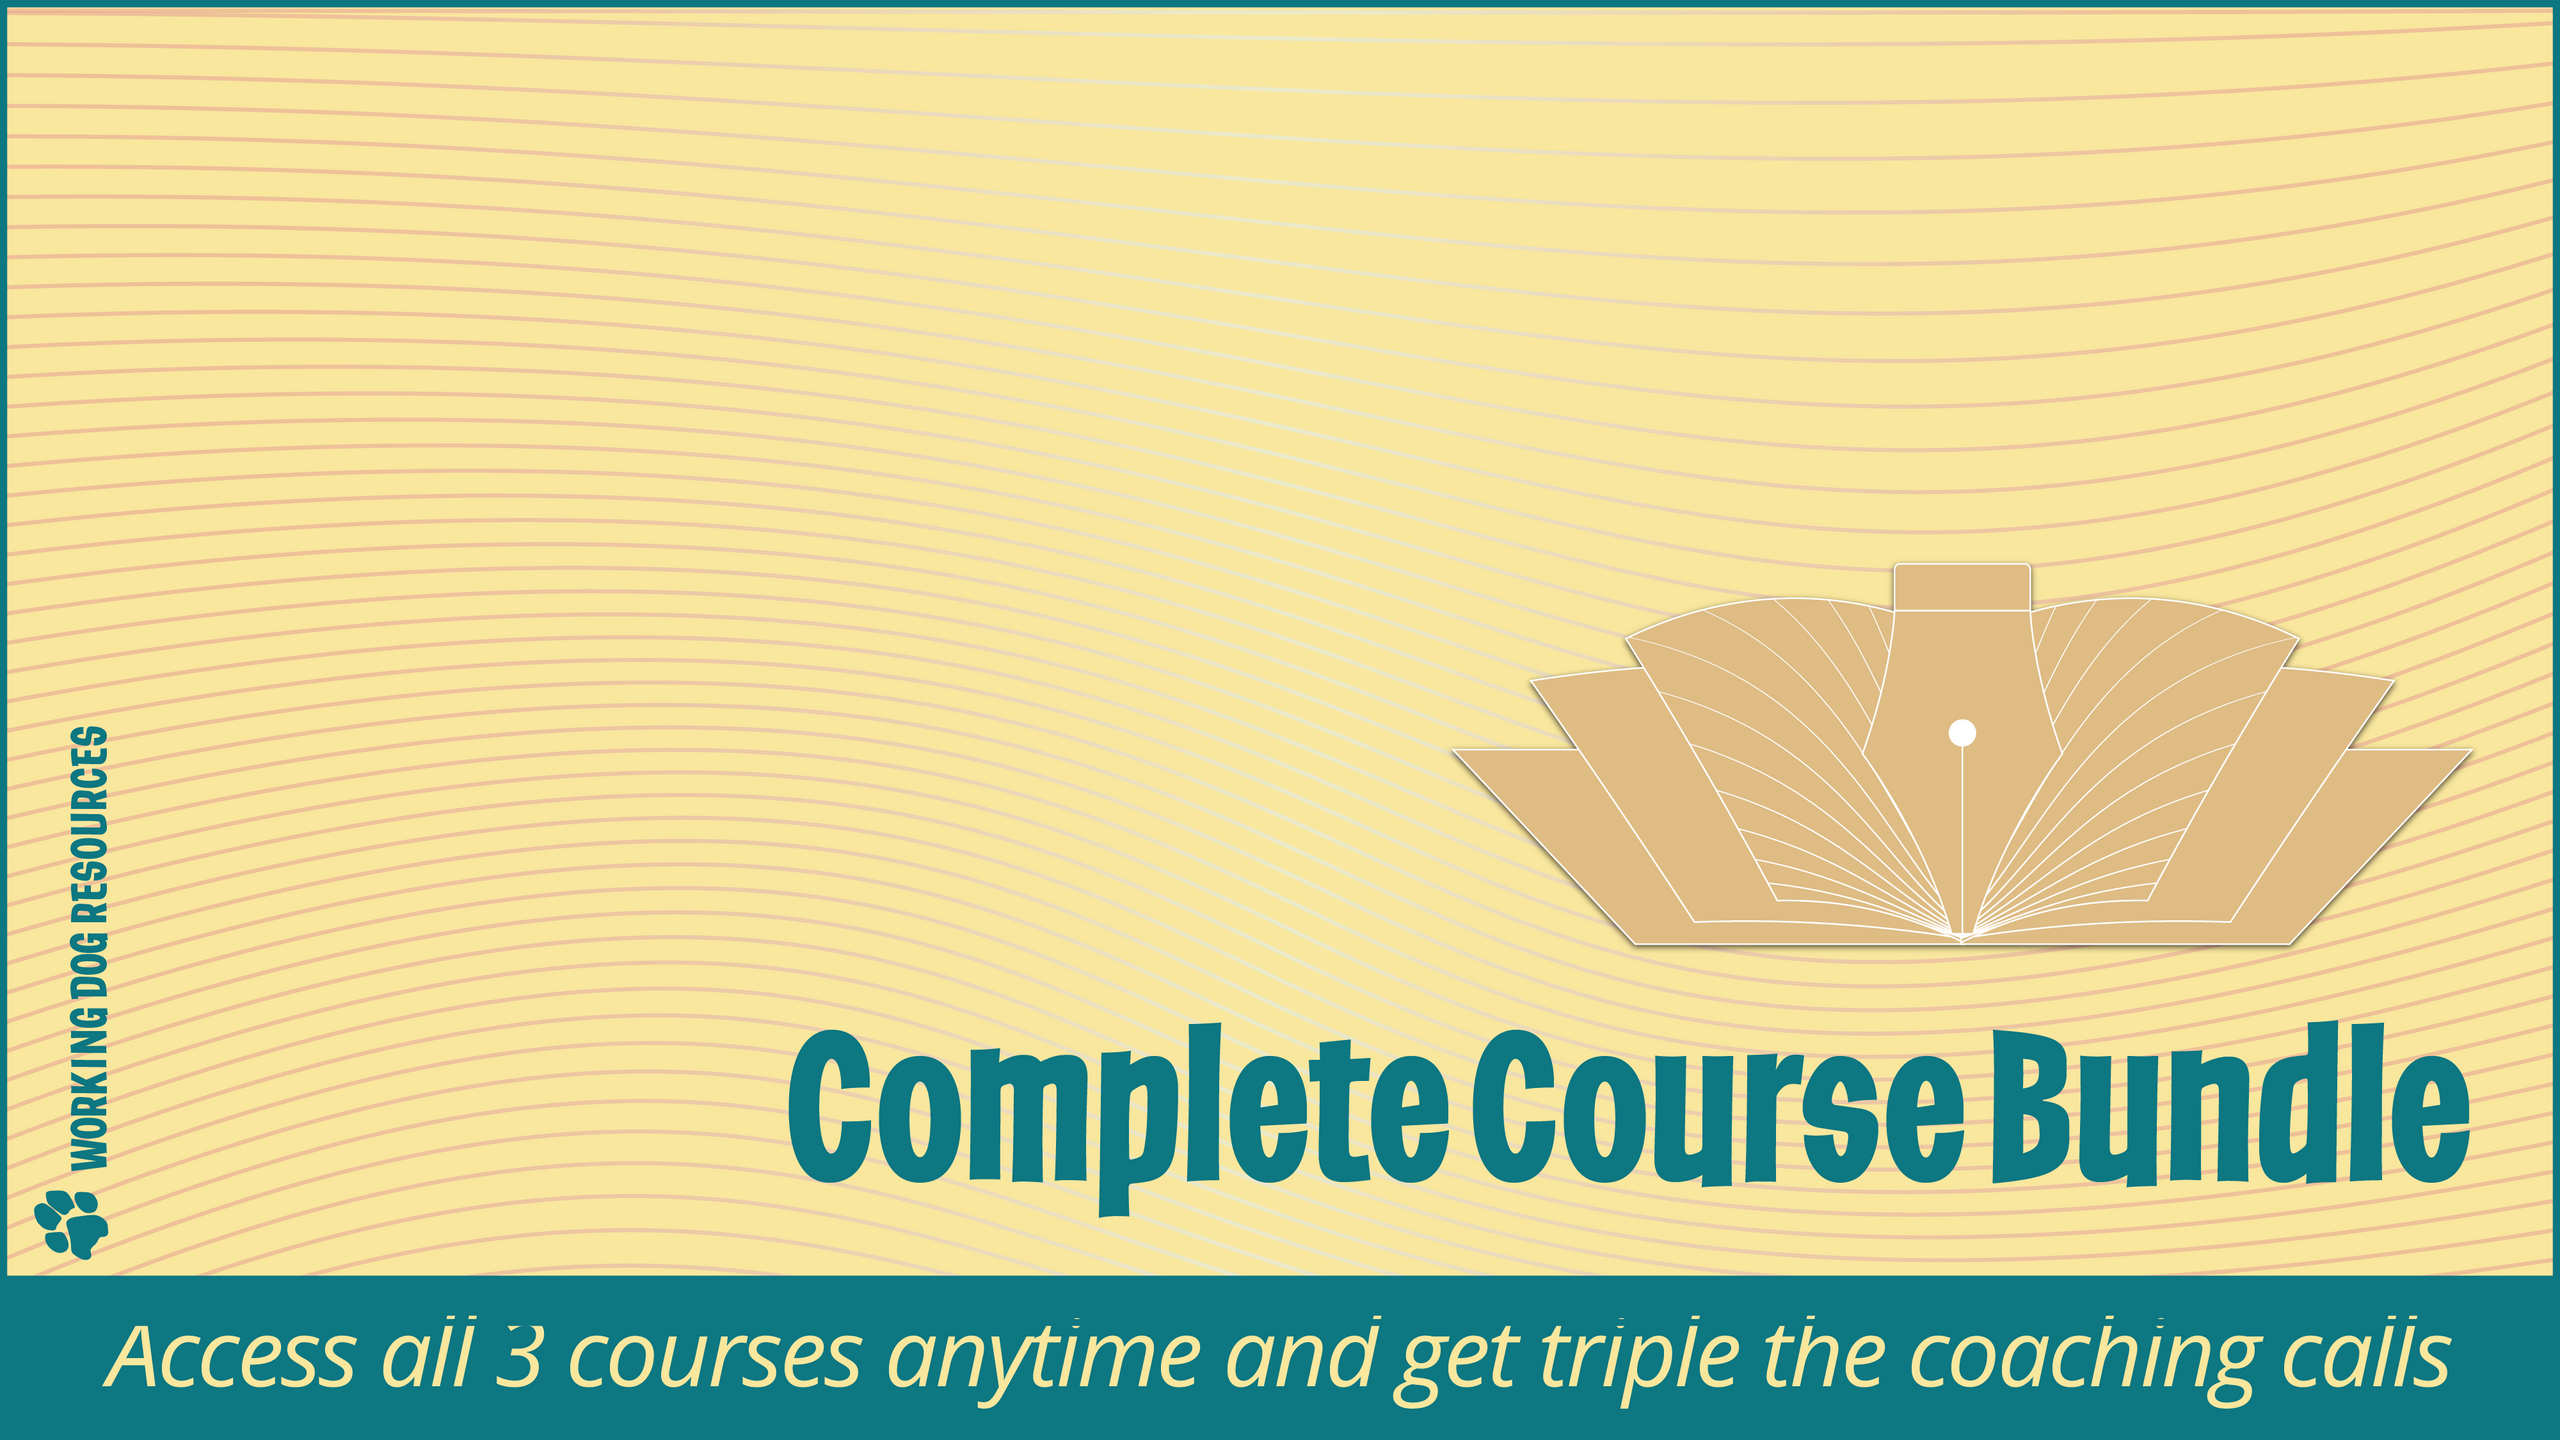 Working Dog Resources complete course bundle